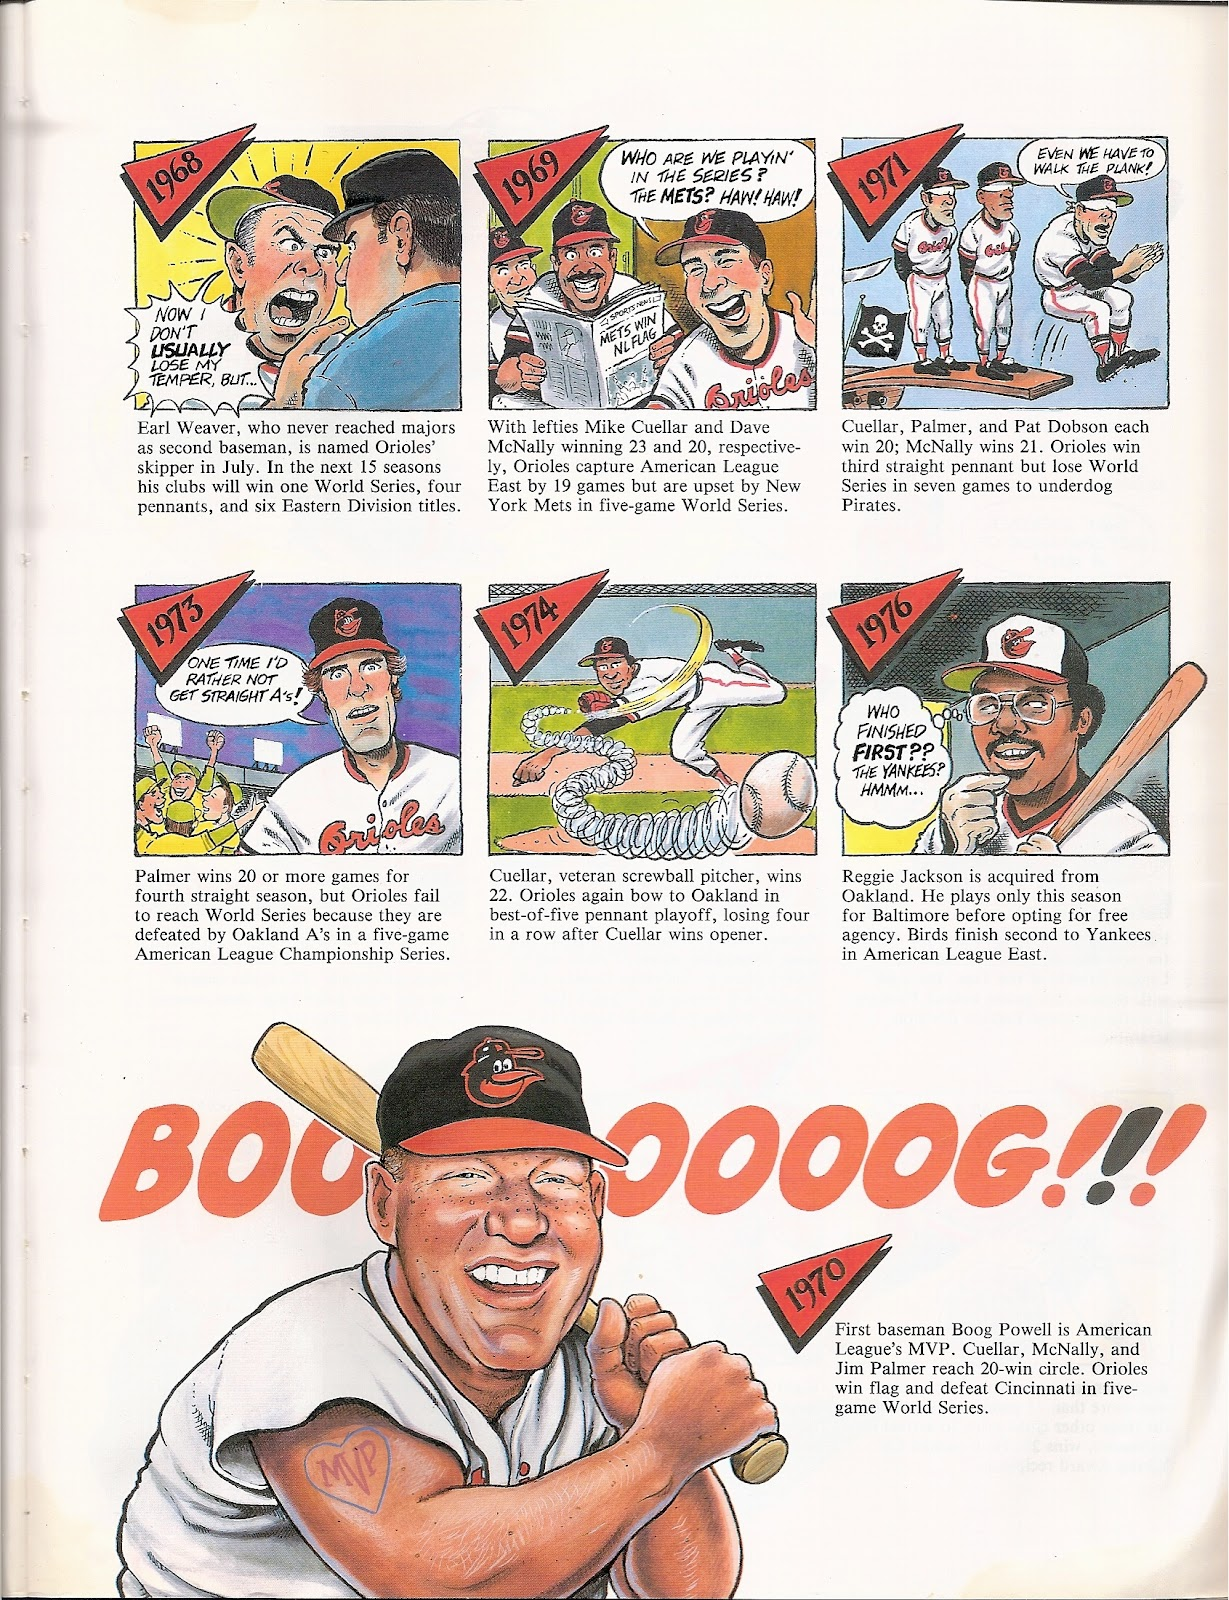 This Card Is Cool My Life in Baseball Cards Cartoon History of